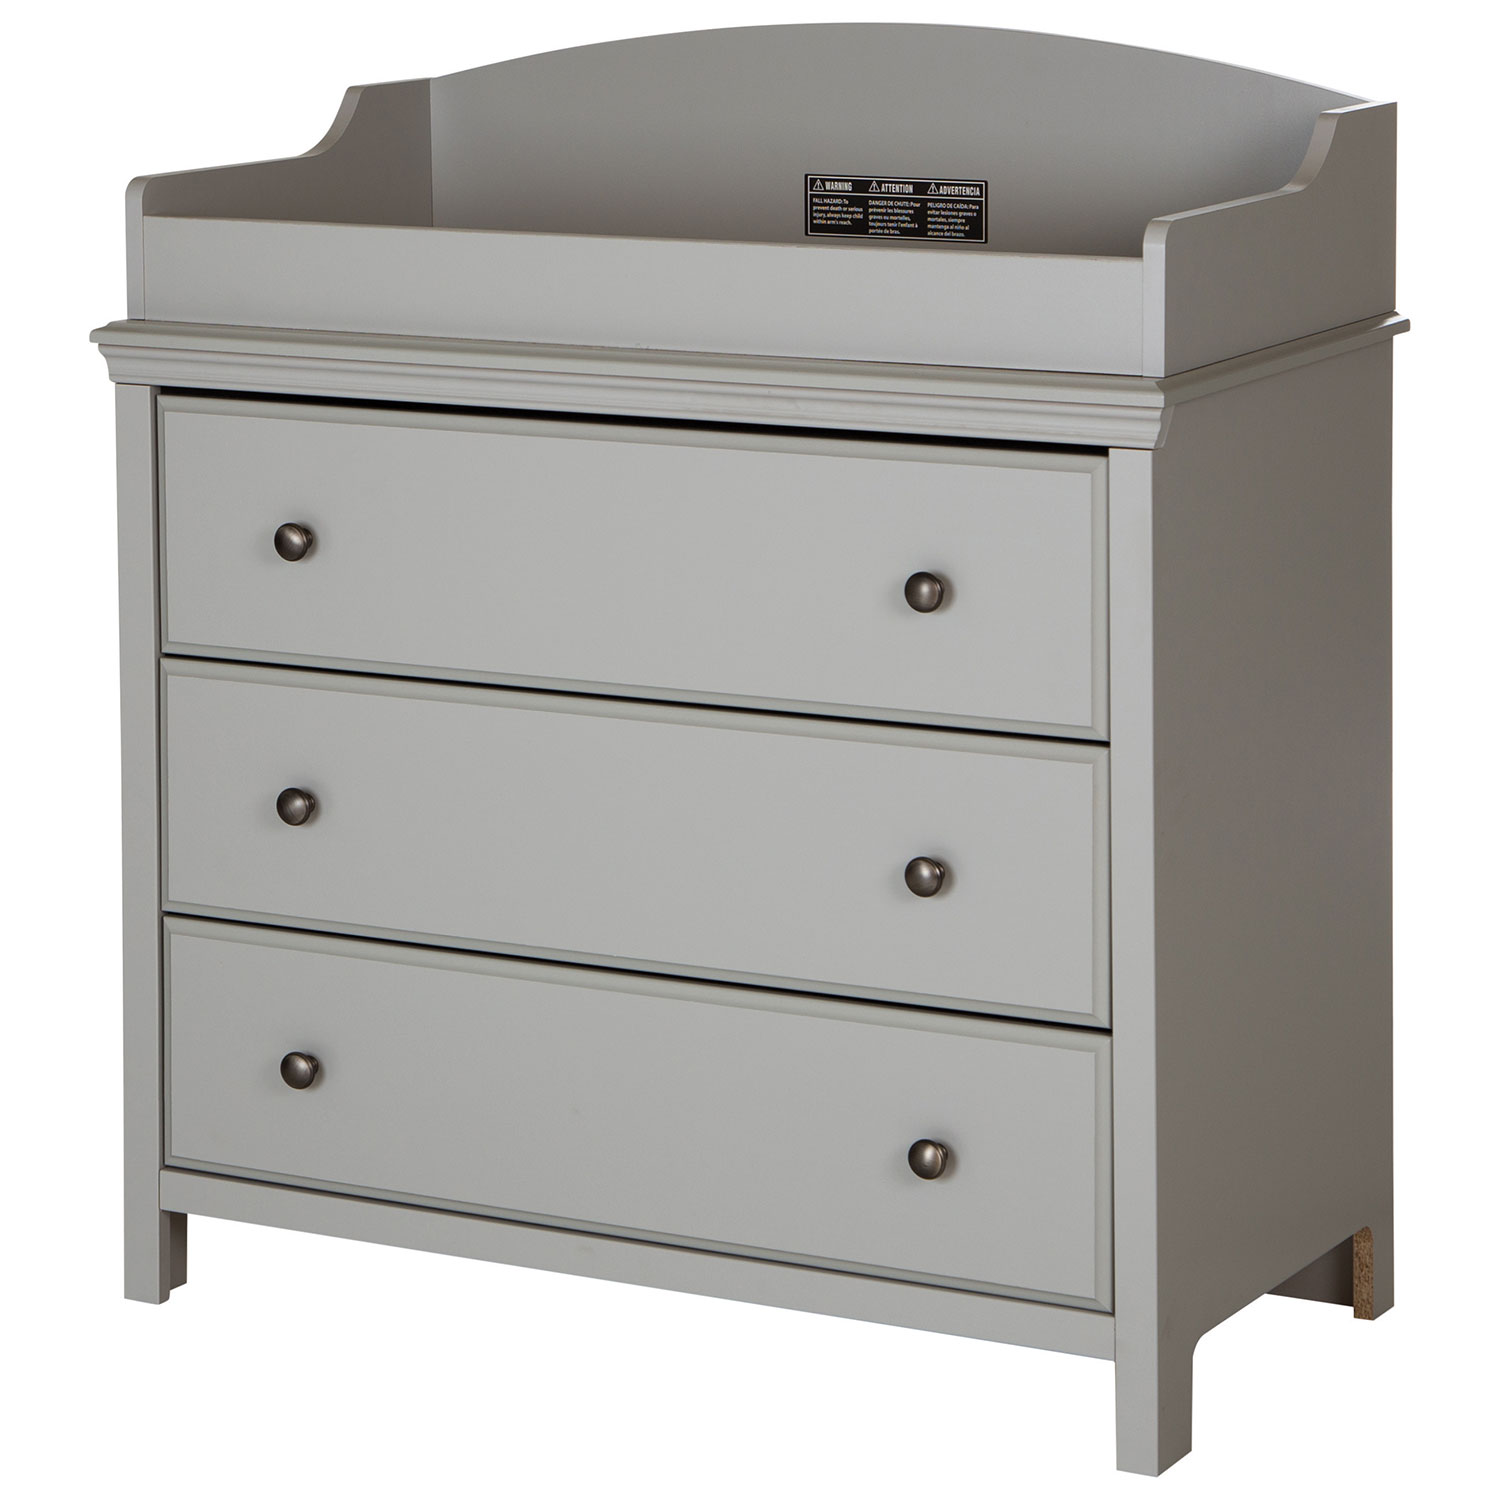 South Shore Cotton Candy Changing Table With Drawers   Soft Gray : Change  Tables   Best Buy Canada